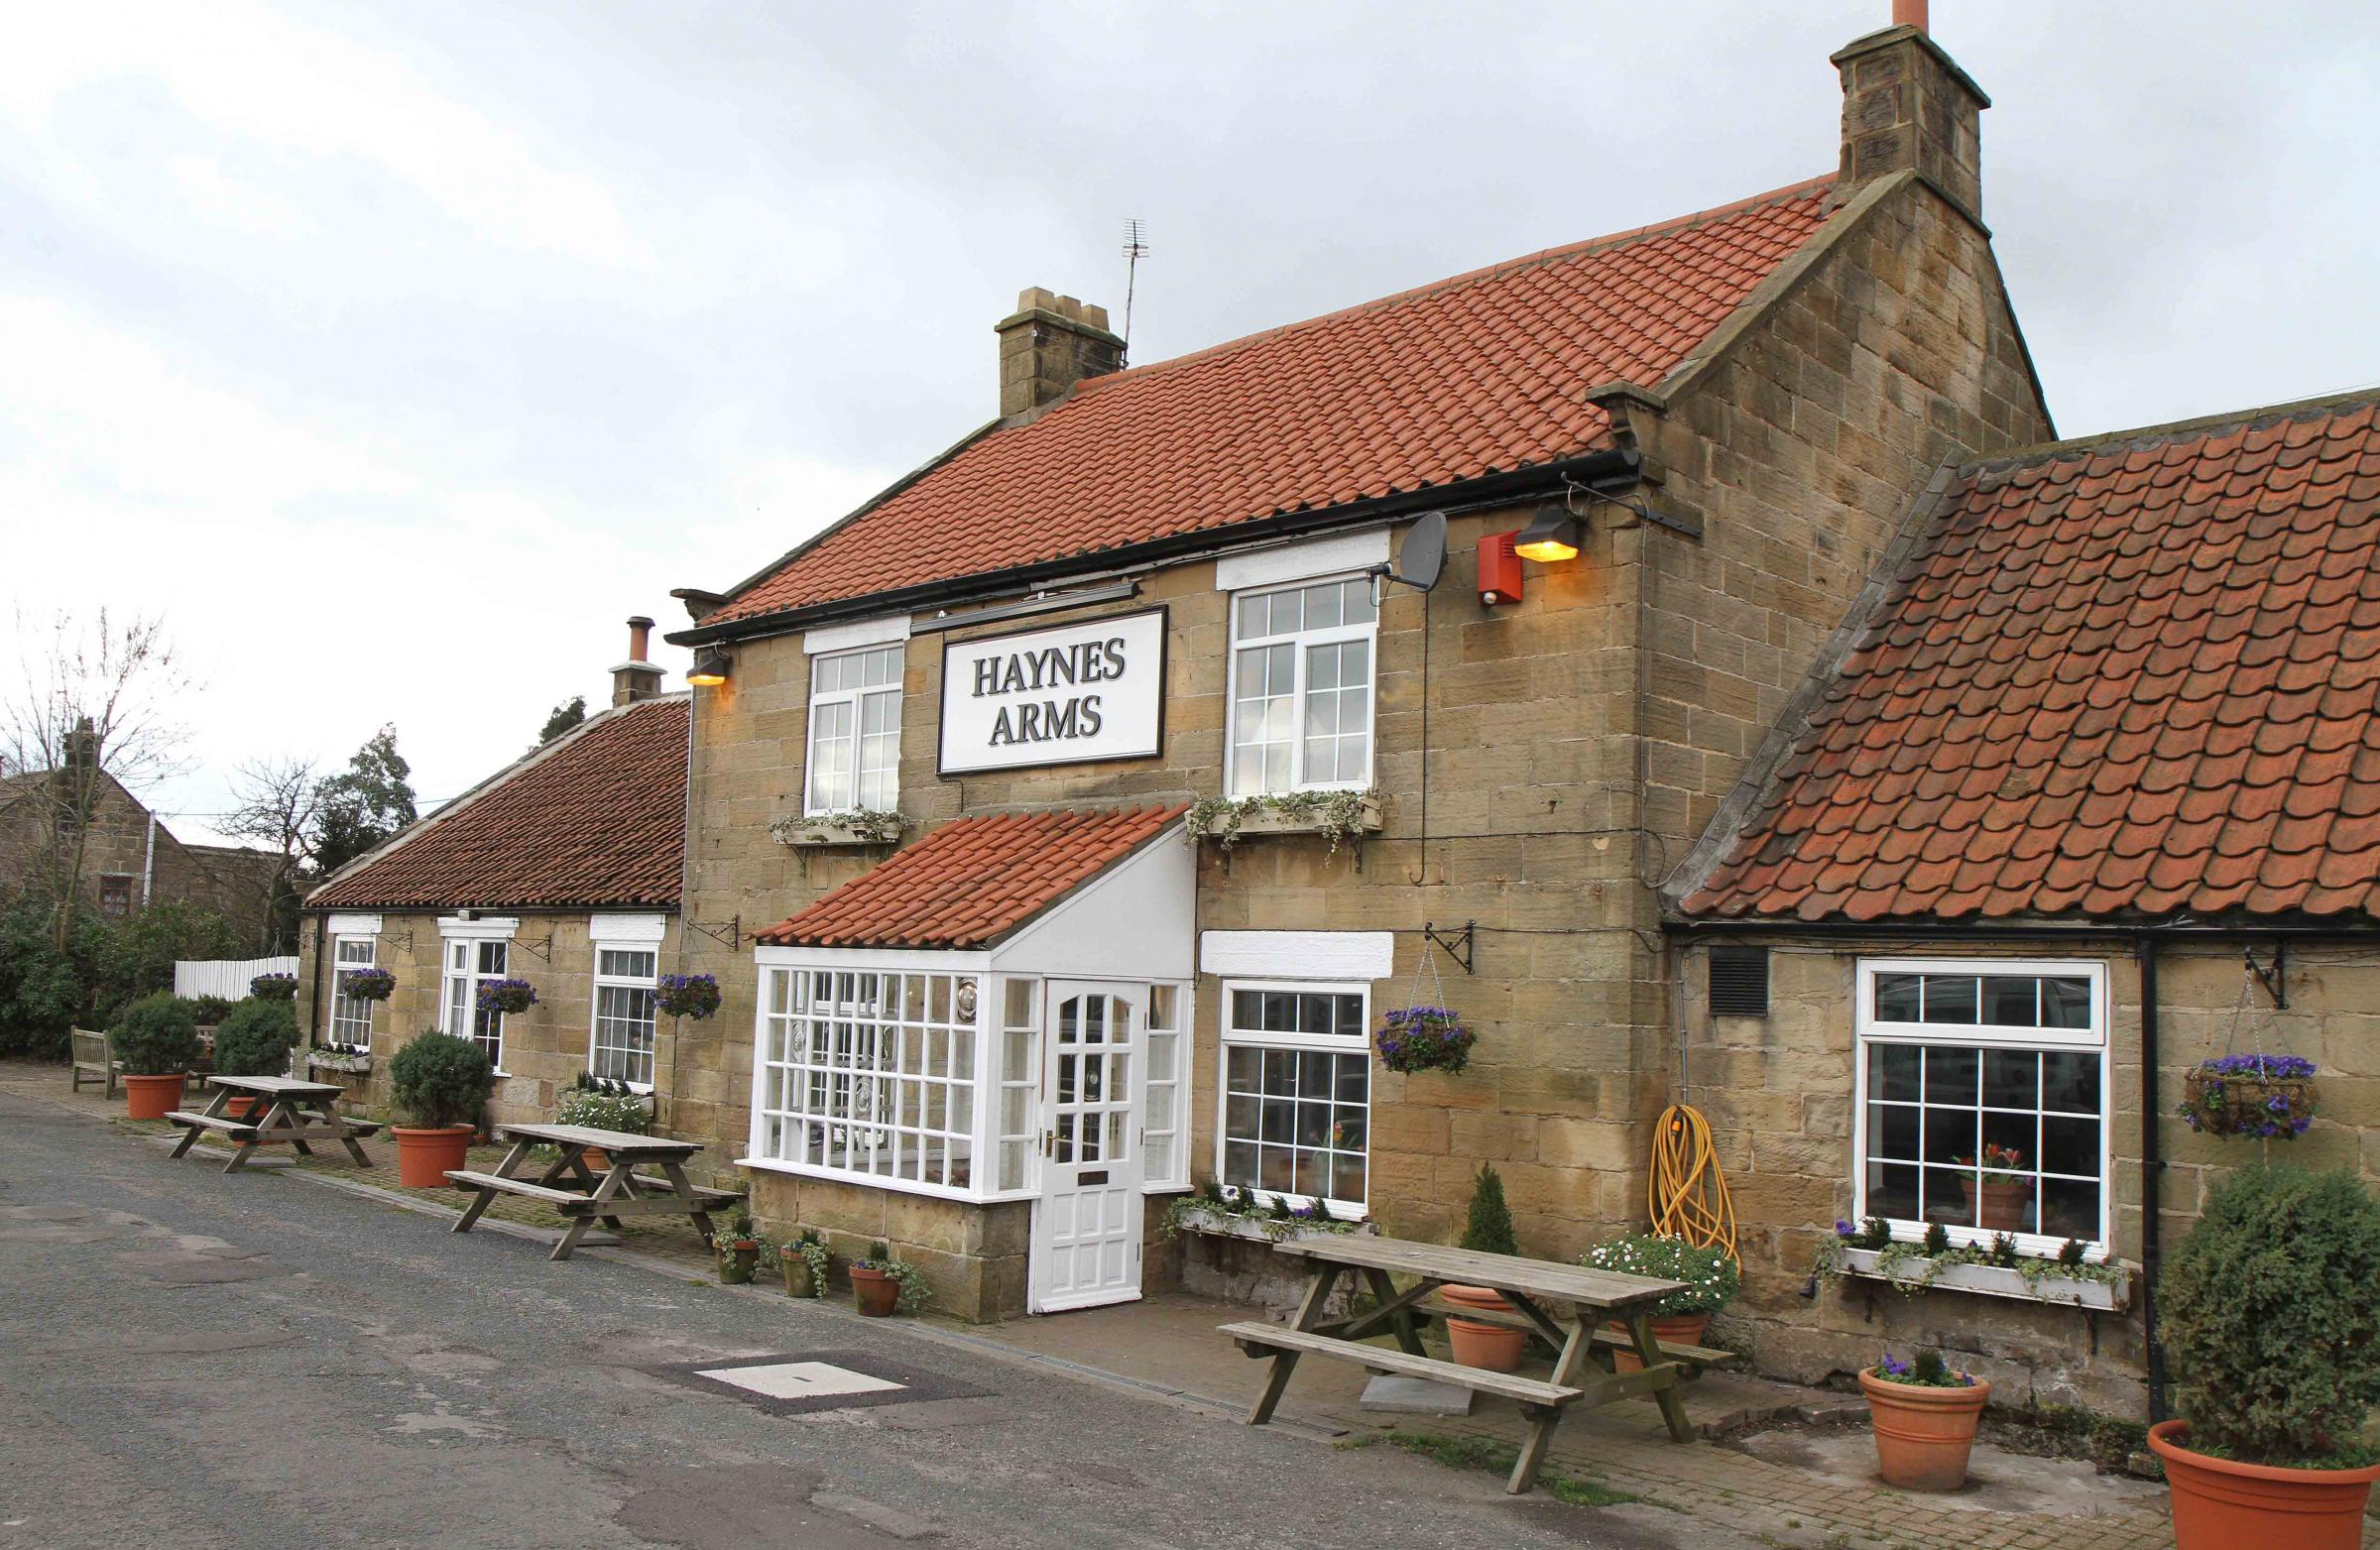 The Haynes Arms at Kirby Sigston